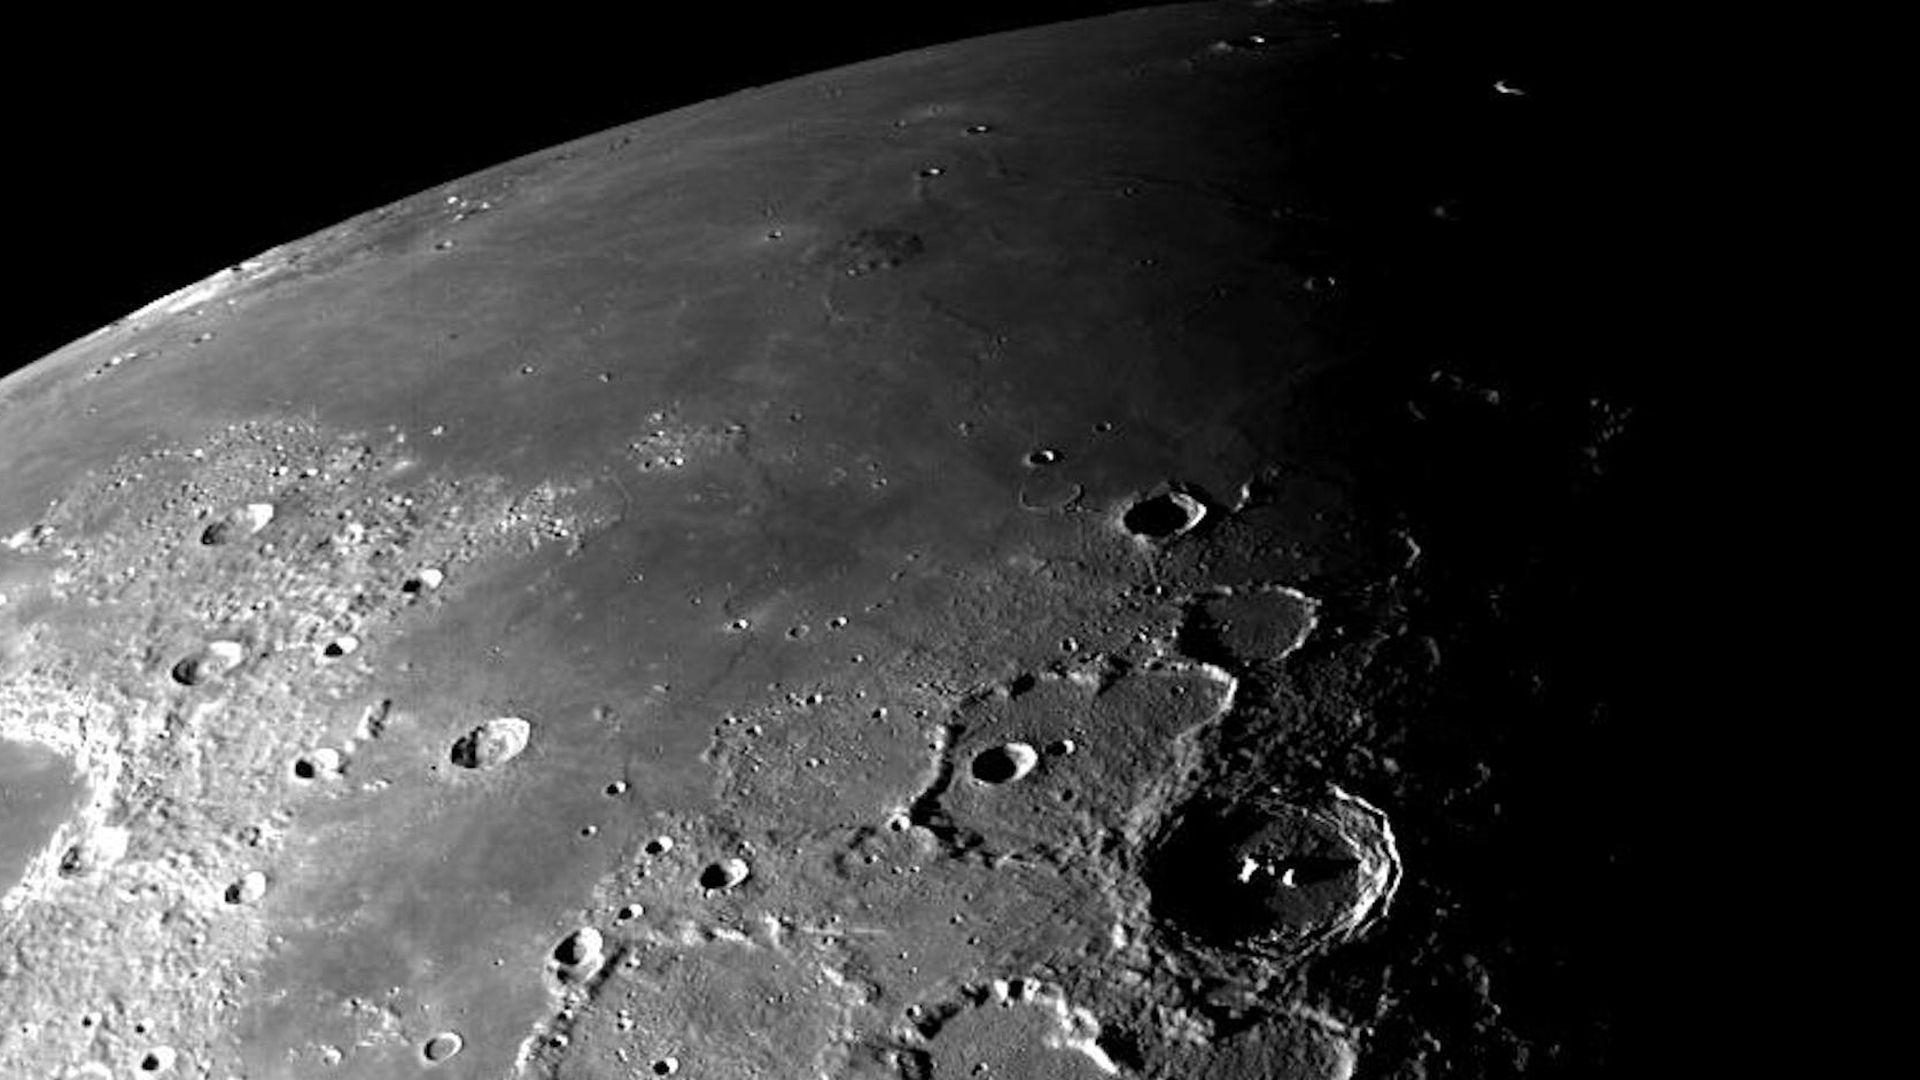 The surface of the Moon seen from above.